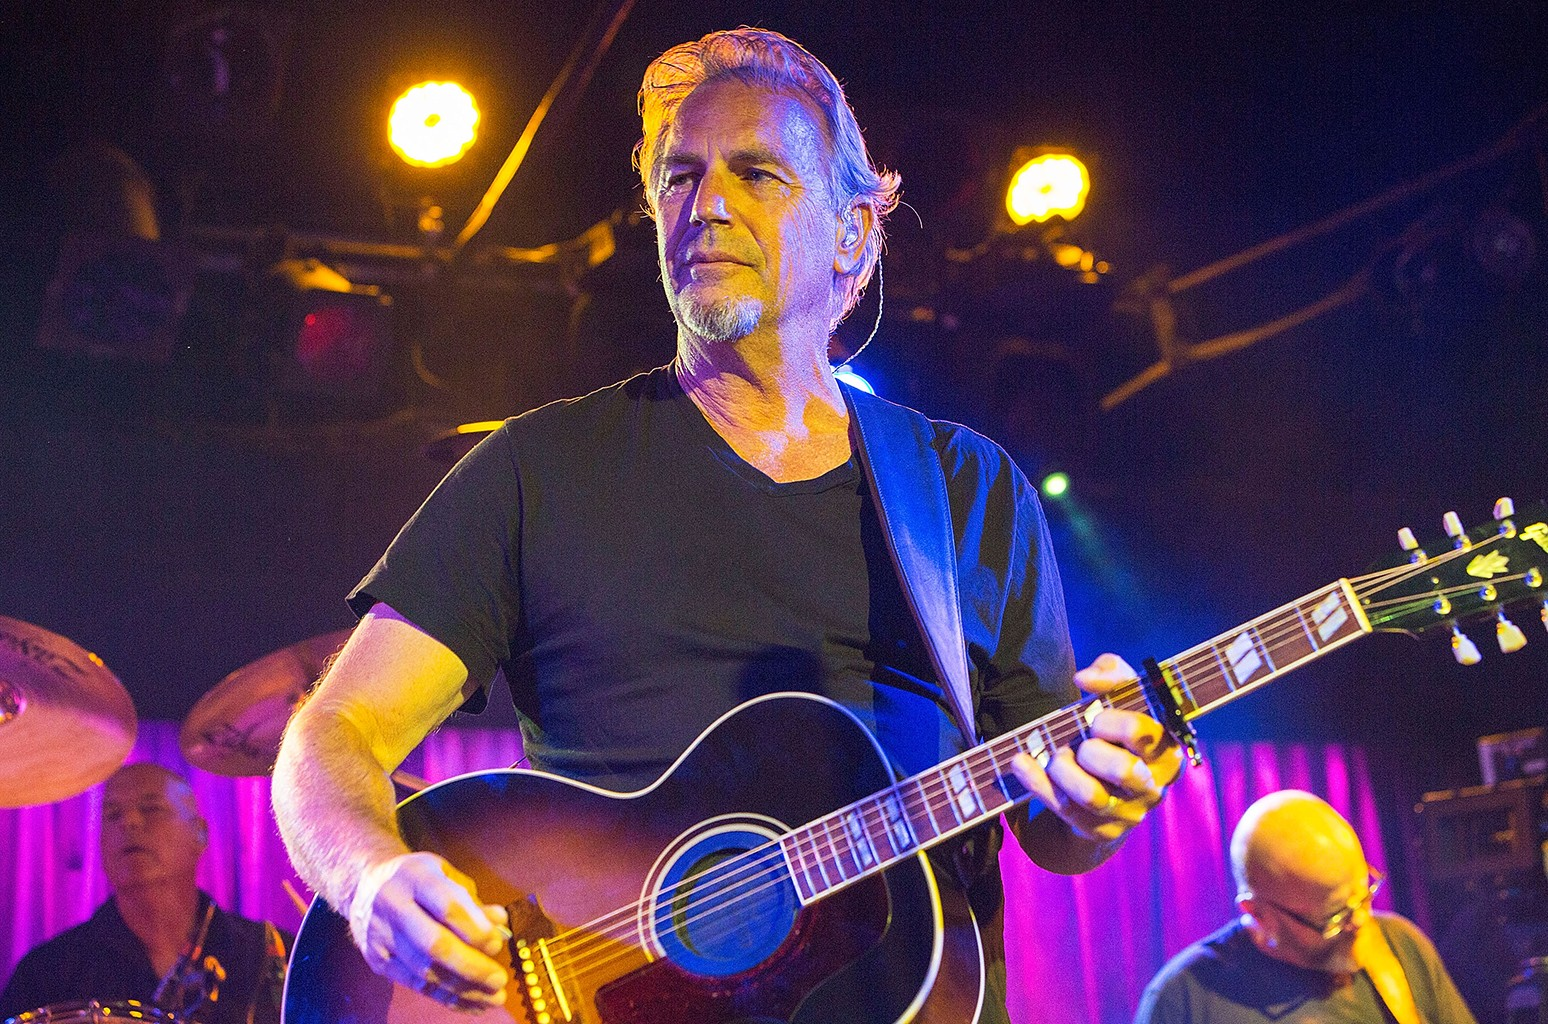 Kevin Costner performs on stage at Belly Up Tavern on Aug. 11, 2015 in Solana Beach, Calif.